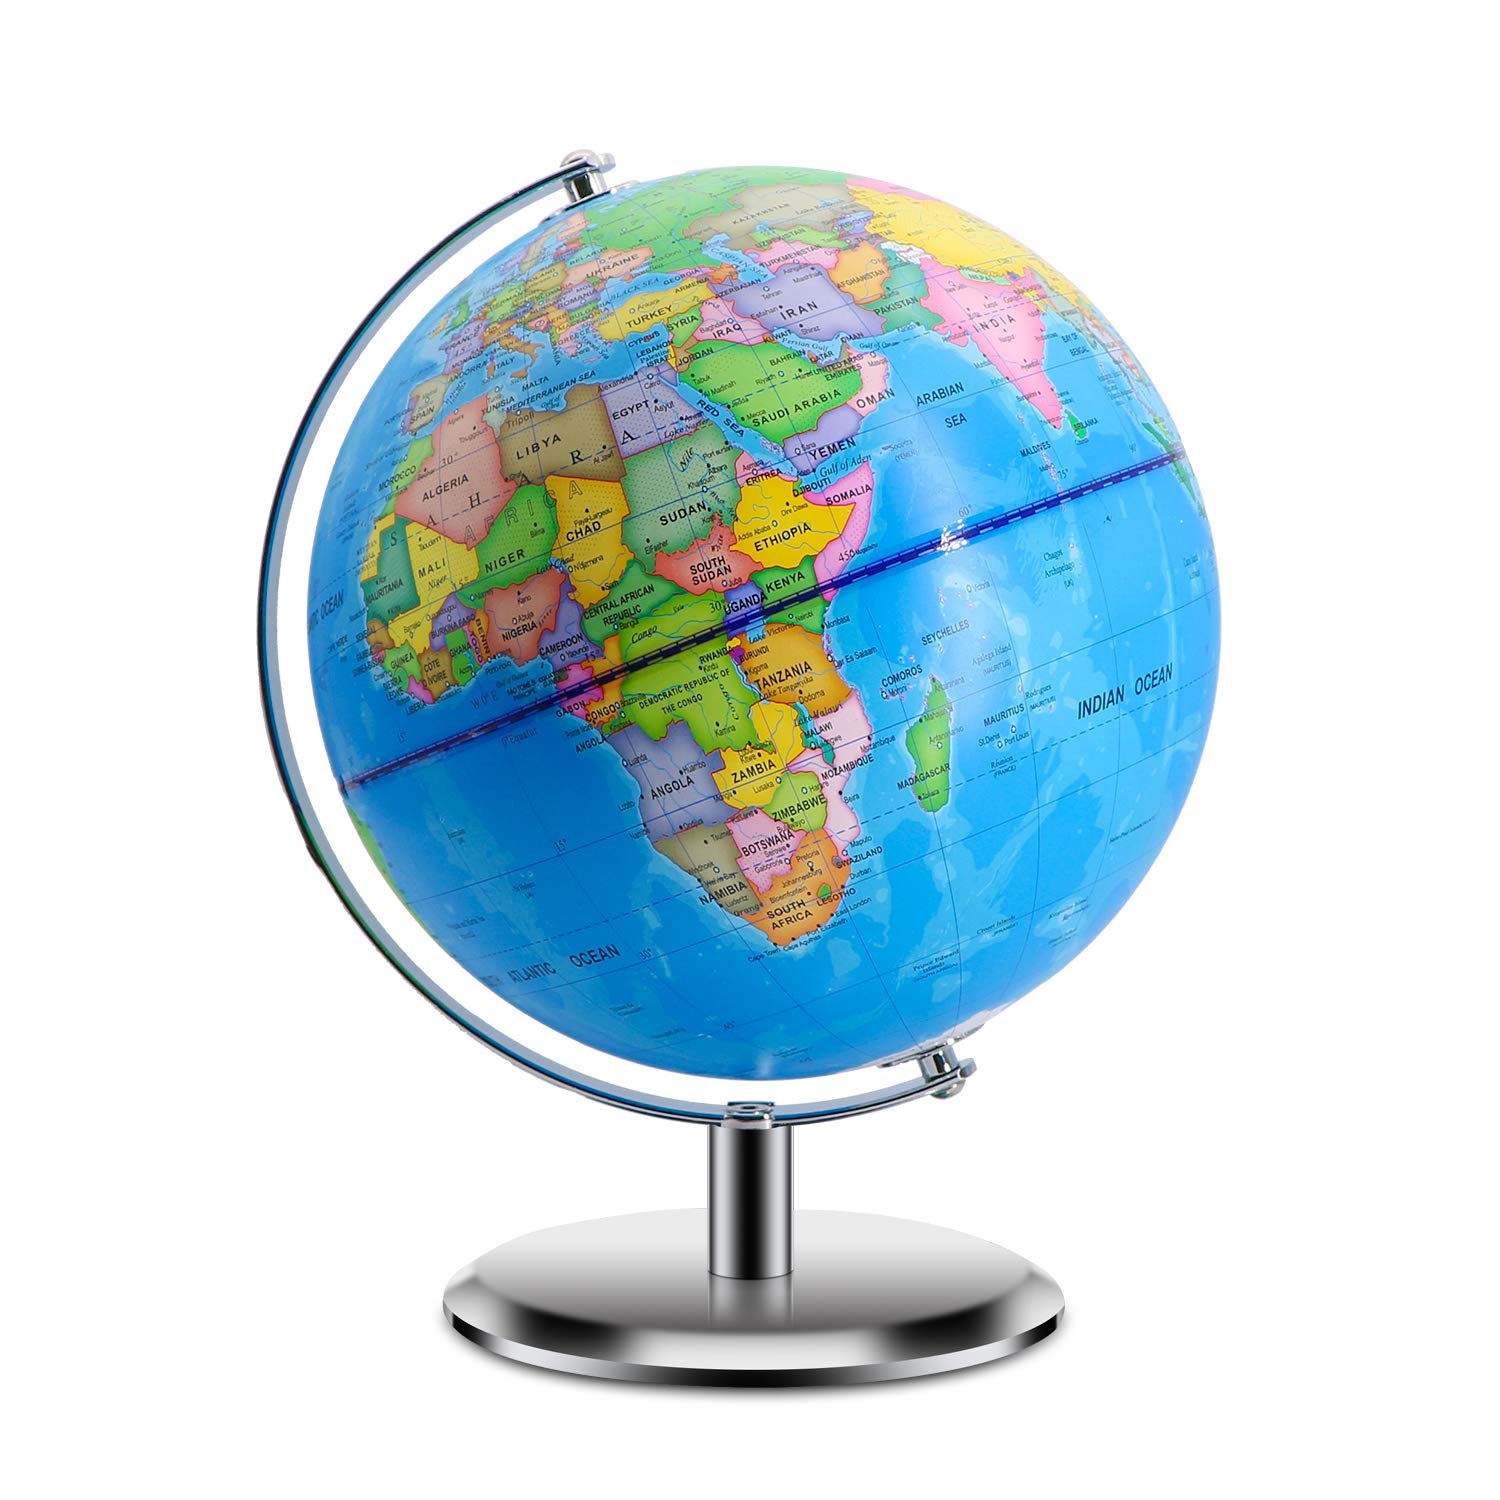 World Globes for Kids - Larger Size 12'' Educational World Globe with Stand Adults Desktop Geographic Gobles Discovery World Globe Educational Toy for Children - Geography Learning Toy (Blue)